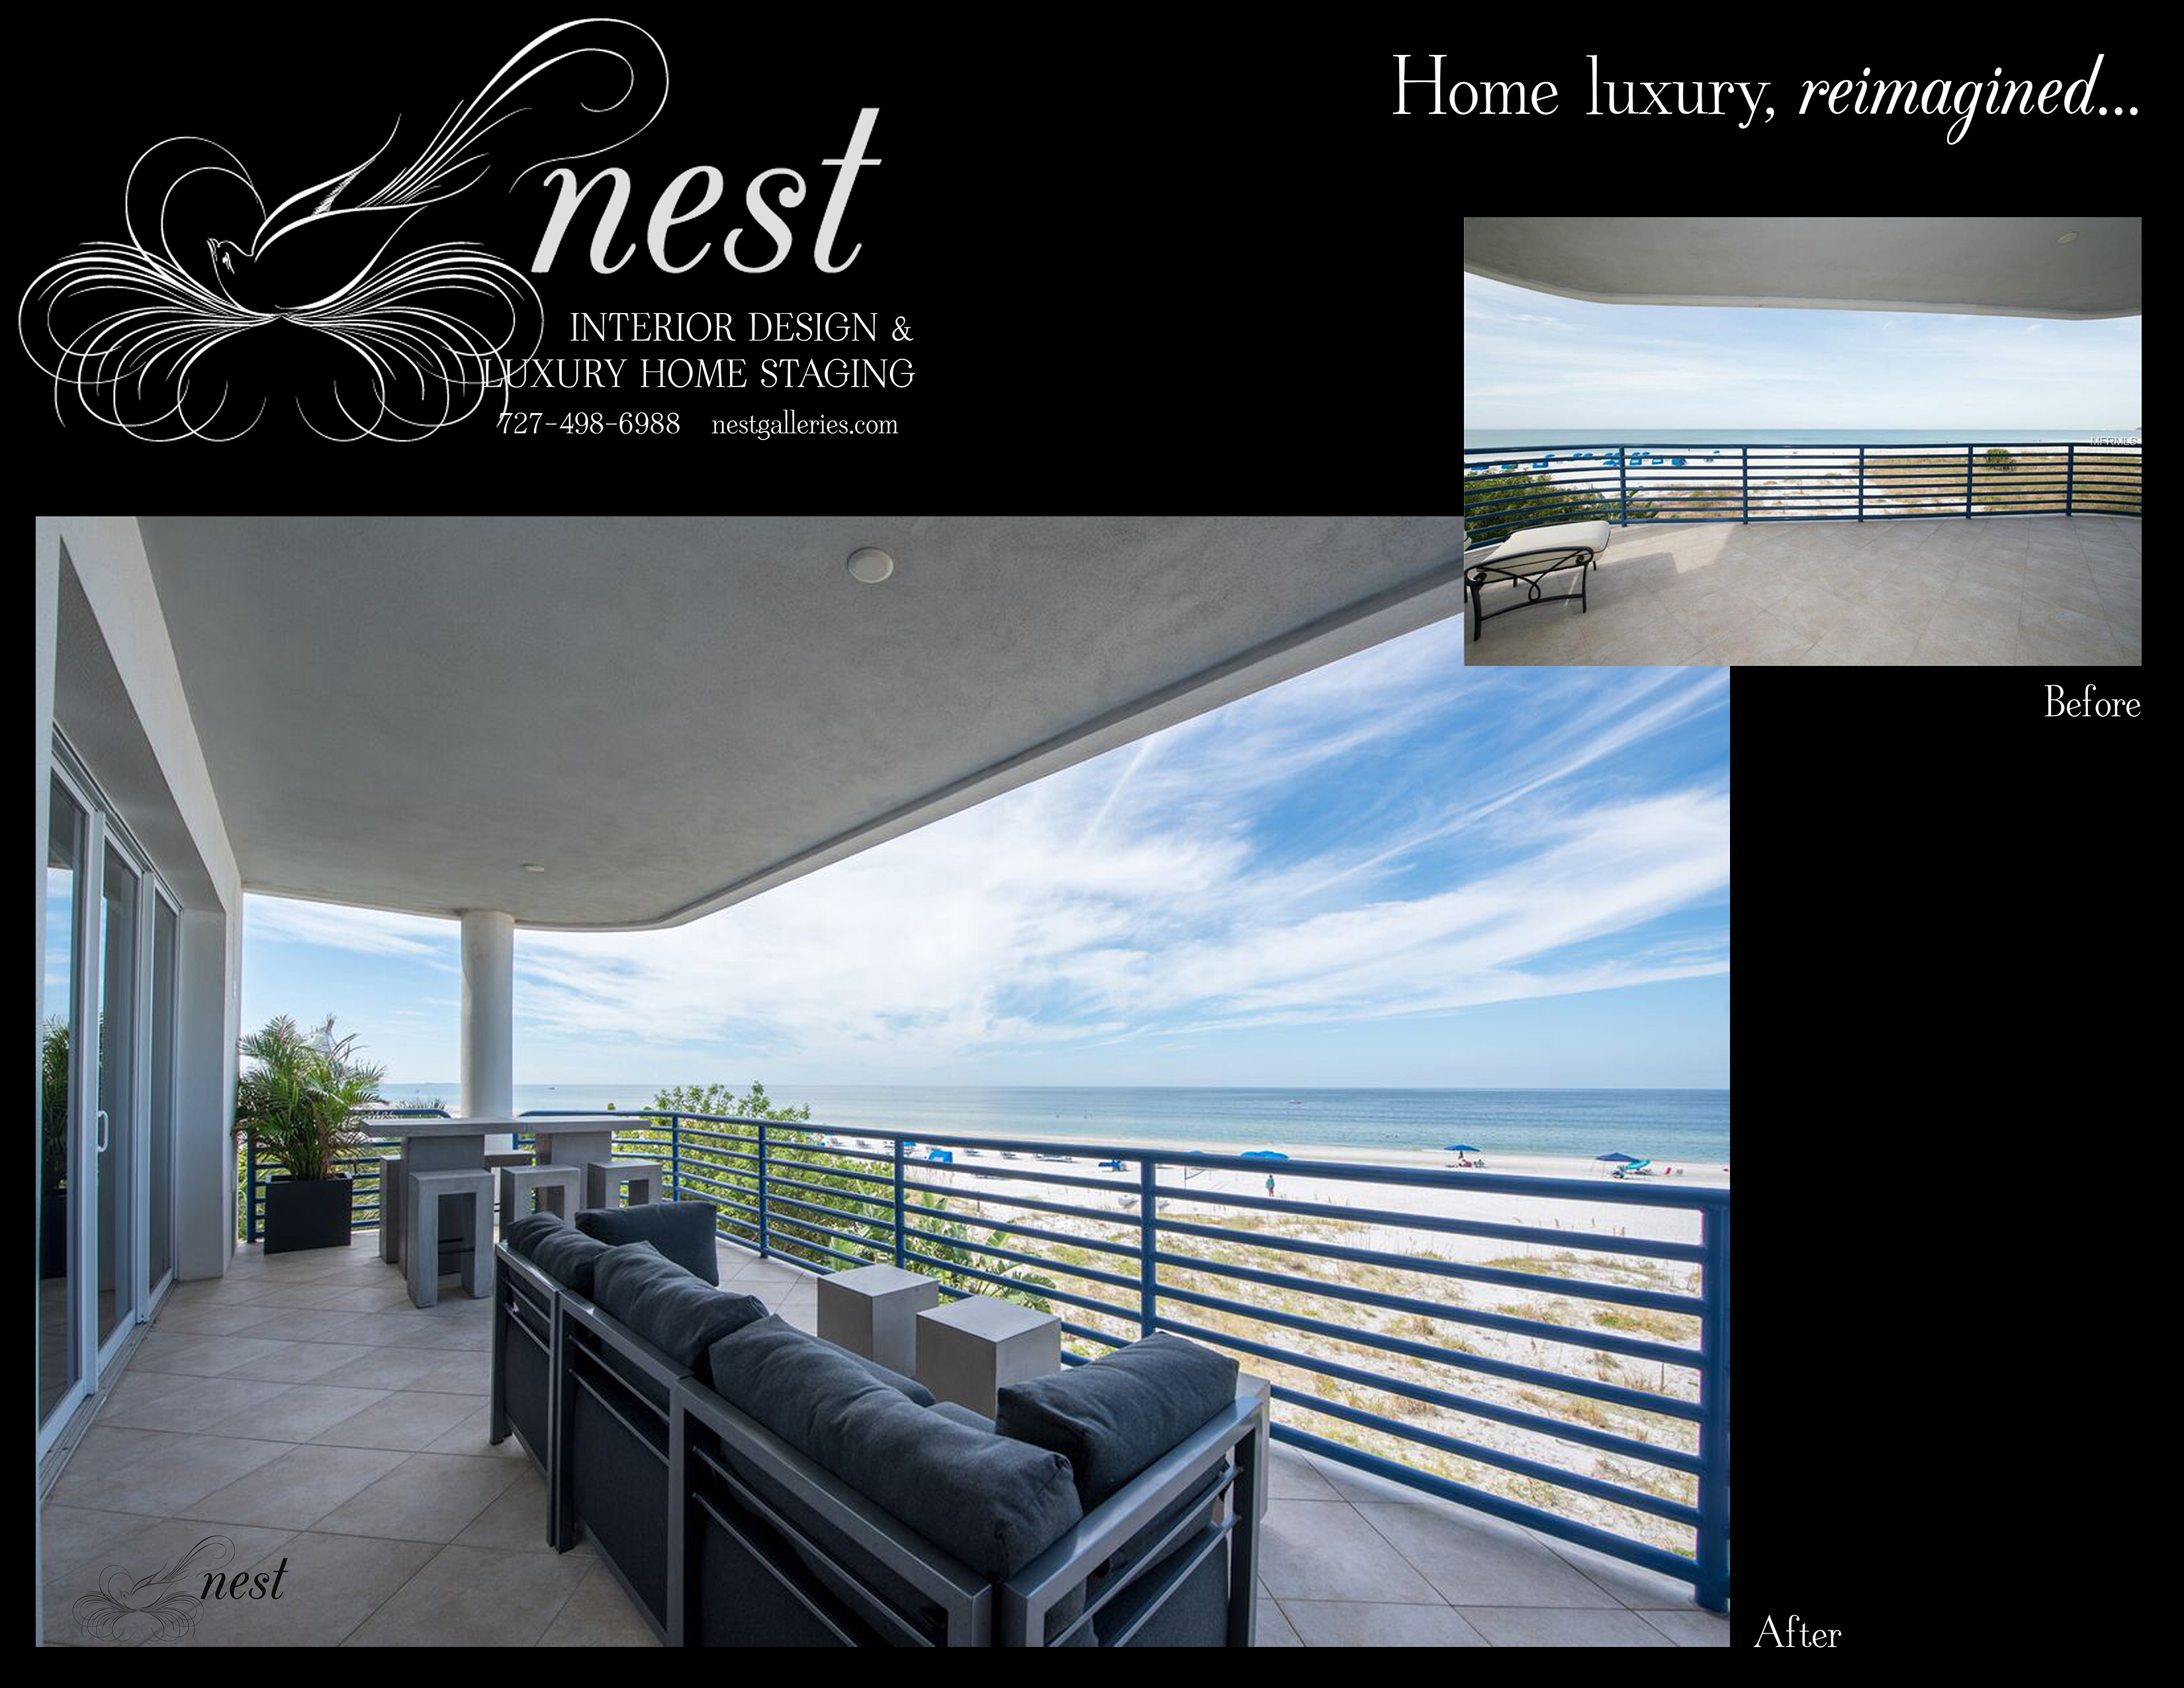 St Pete Beach Balcony B&A